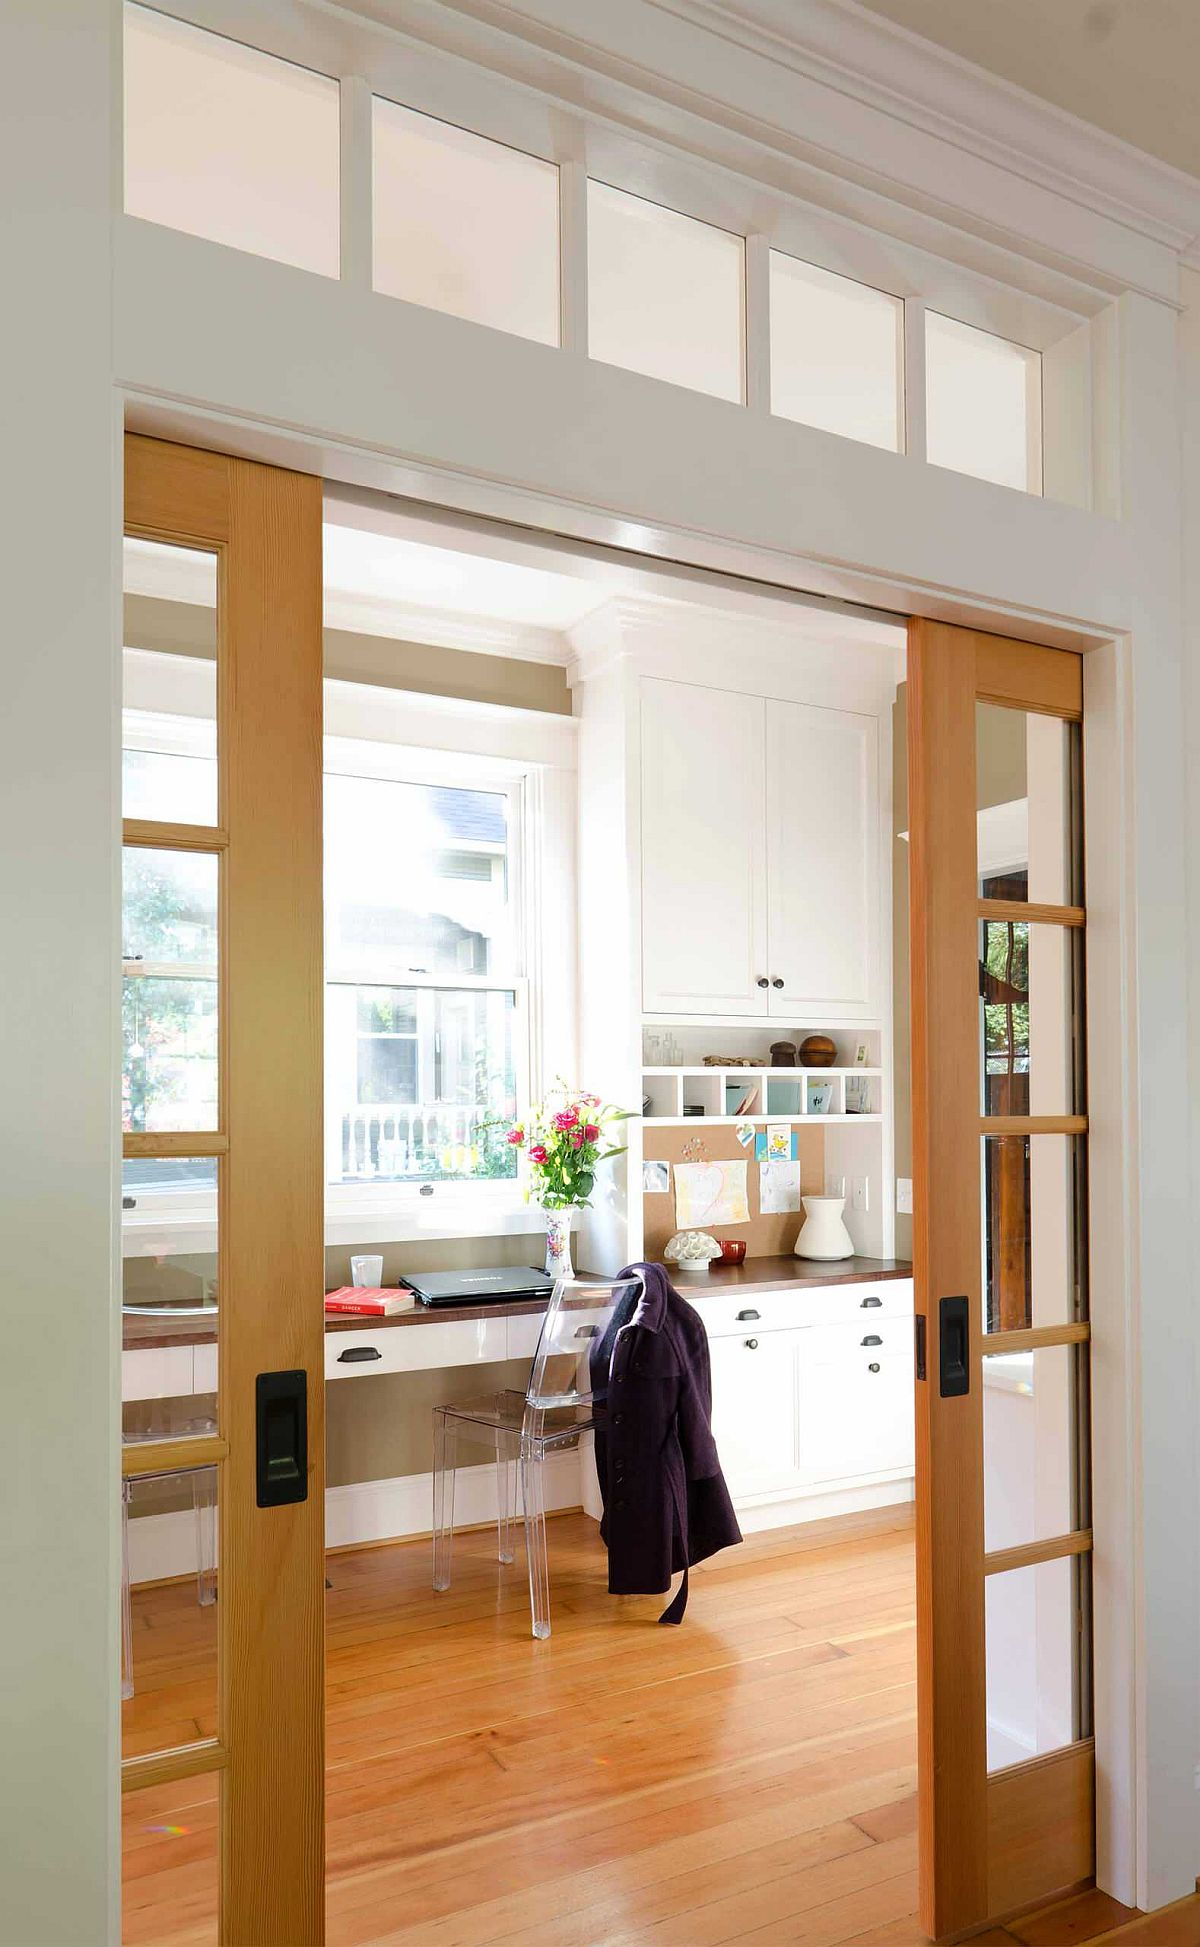 Sliding-glass-walls-with-wooden-frame-are-a-great-way-to-cut-out-noise-57006